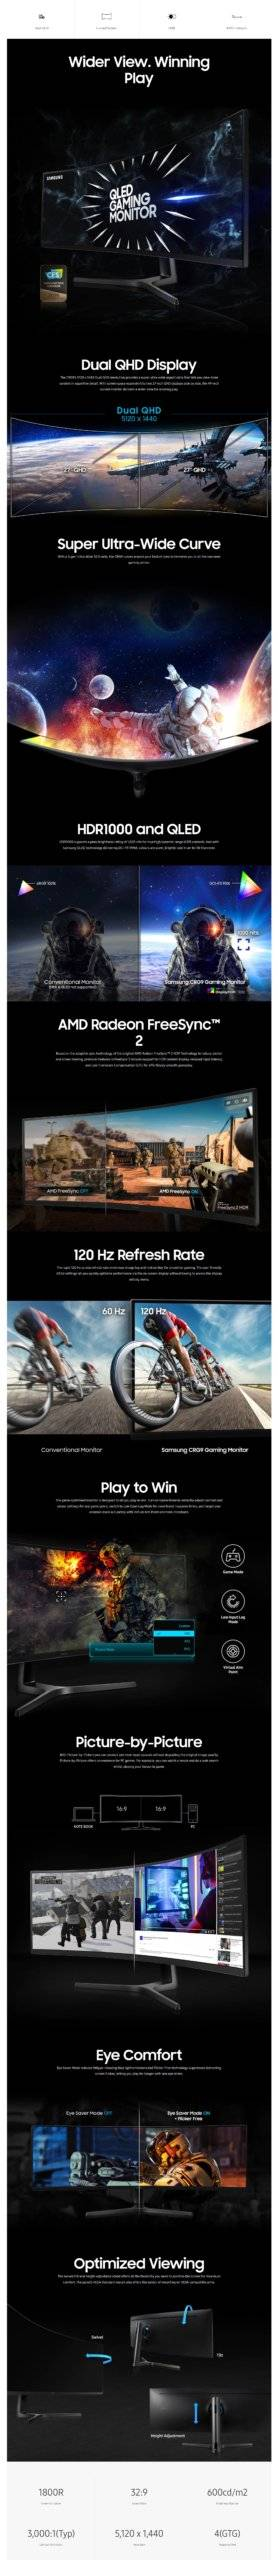 """Samsung CRG90 49"""" High Resolution Curved Gaming Monitor with 144Hz Refresh Rate Description"""